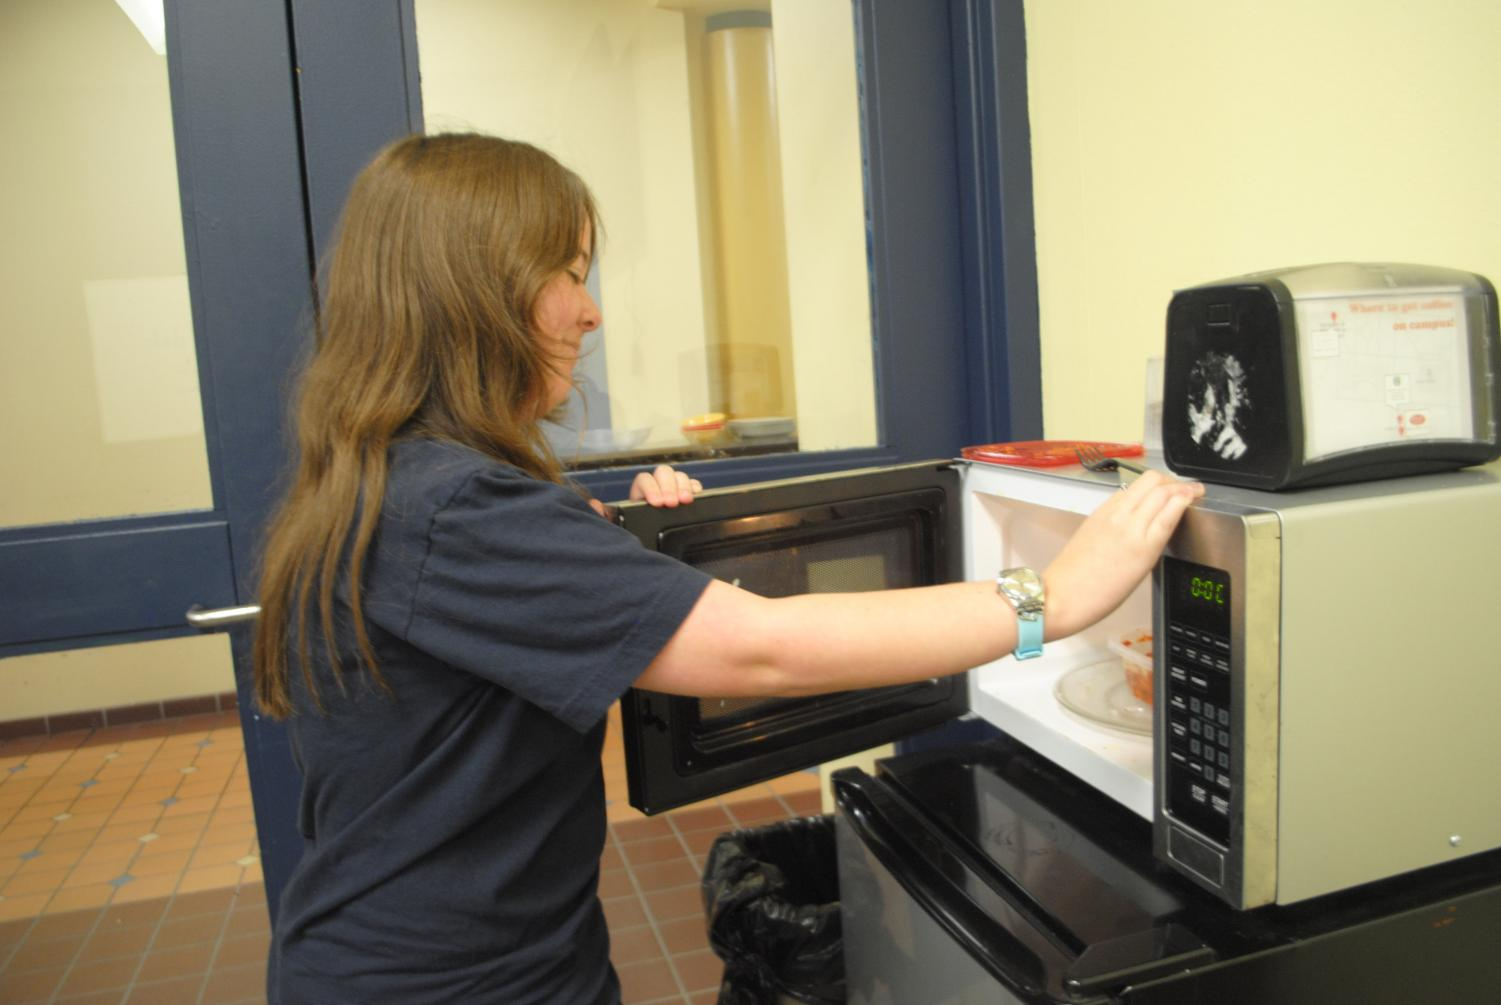 Sophomore cummuter Jen Hilvko uses the commuter lounge's microwave to warm speghetti from home.